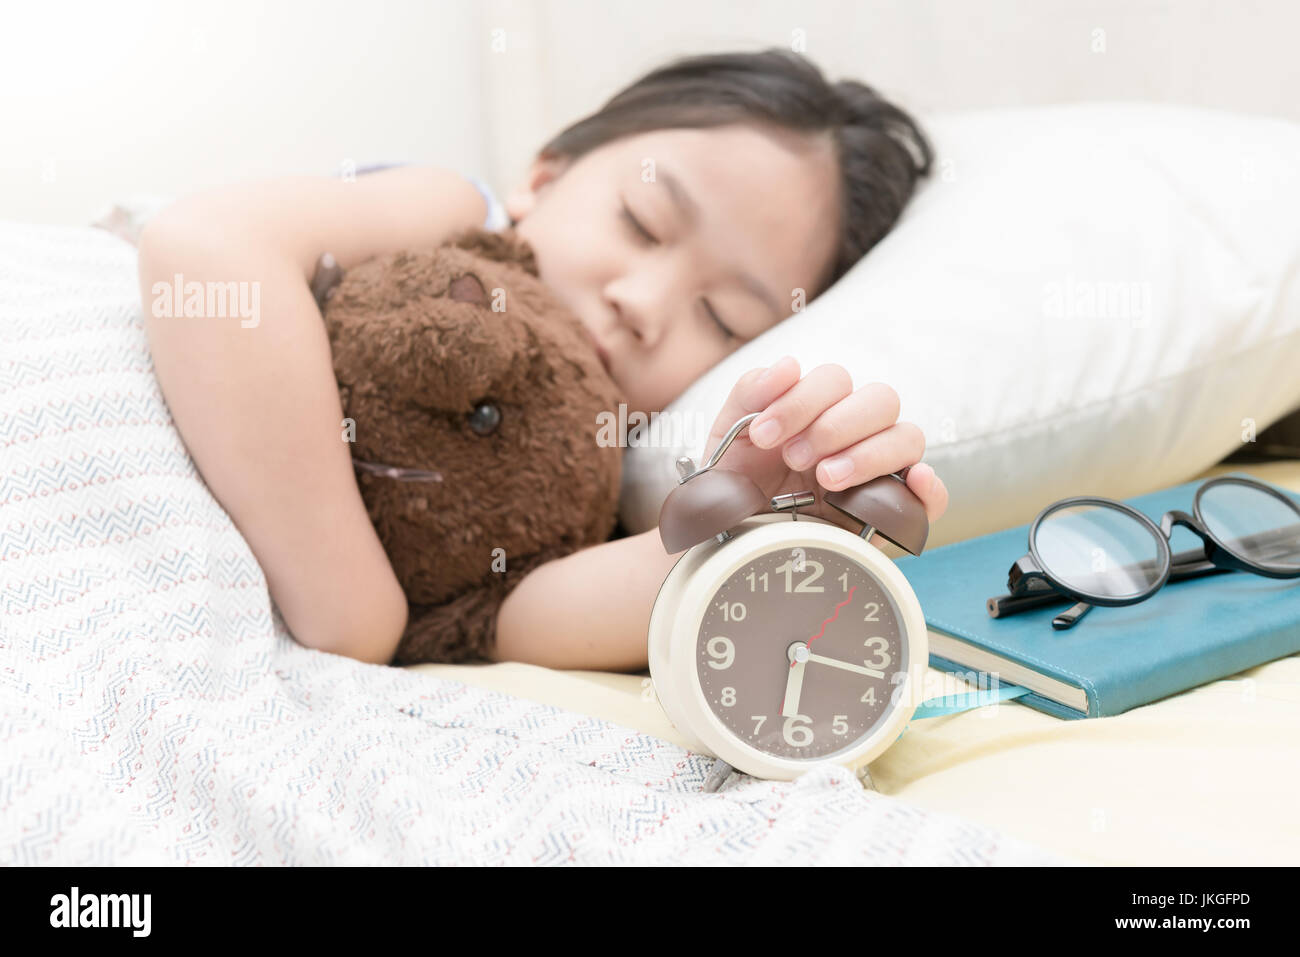 cute little hand girl reaching to turn off alarm clock on the bed in the morning - Stock Image